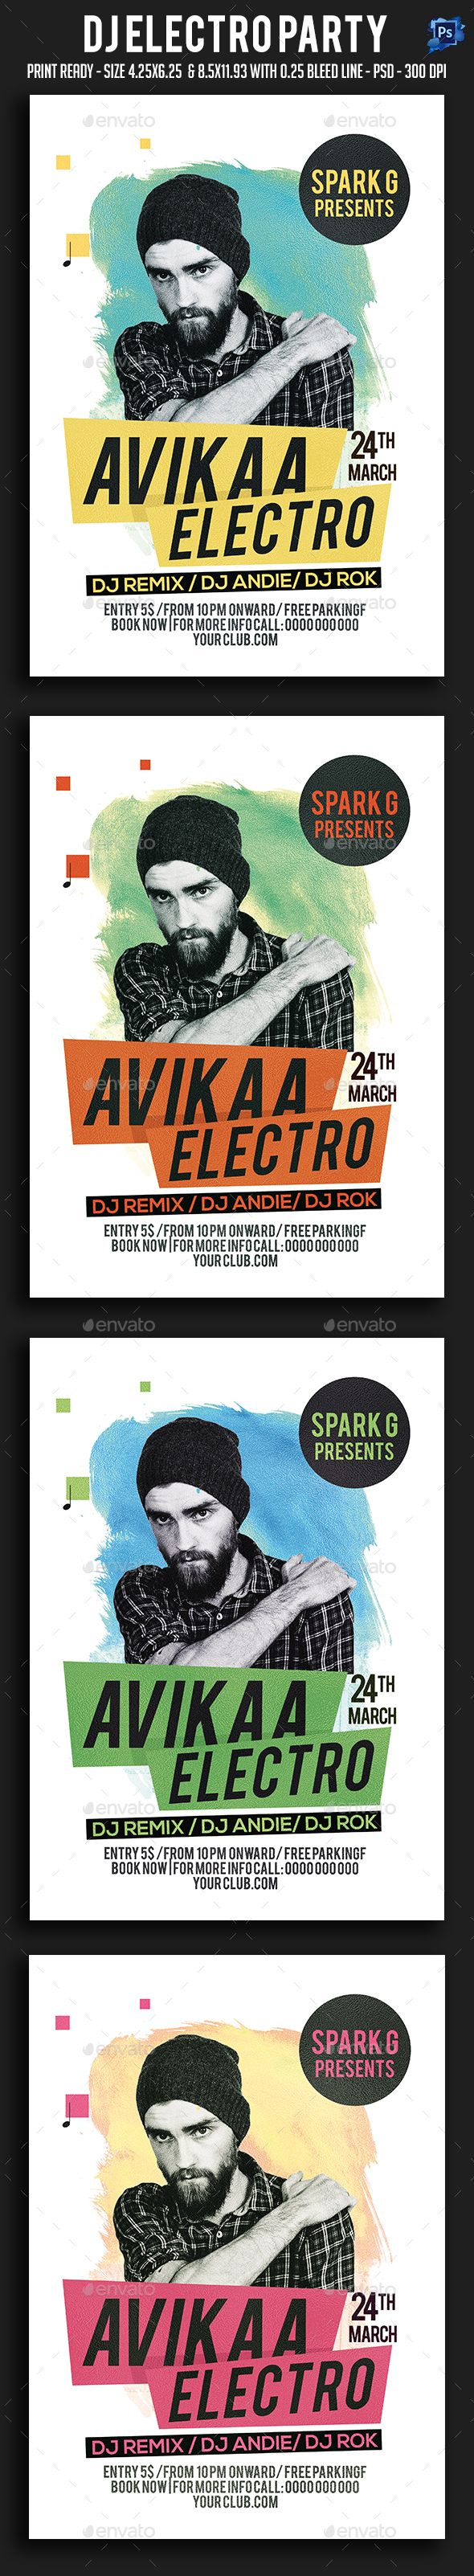 5s poster design - Dj Electro Party Flyer